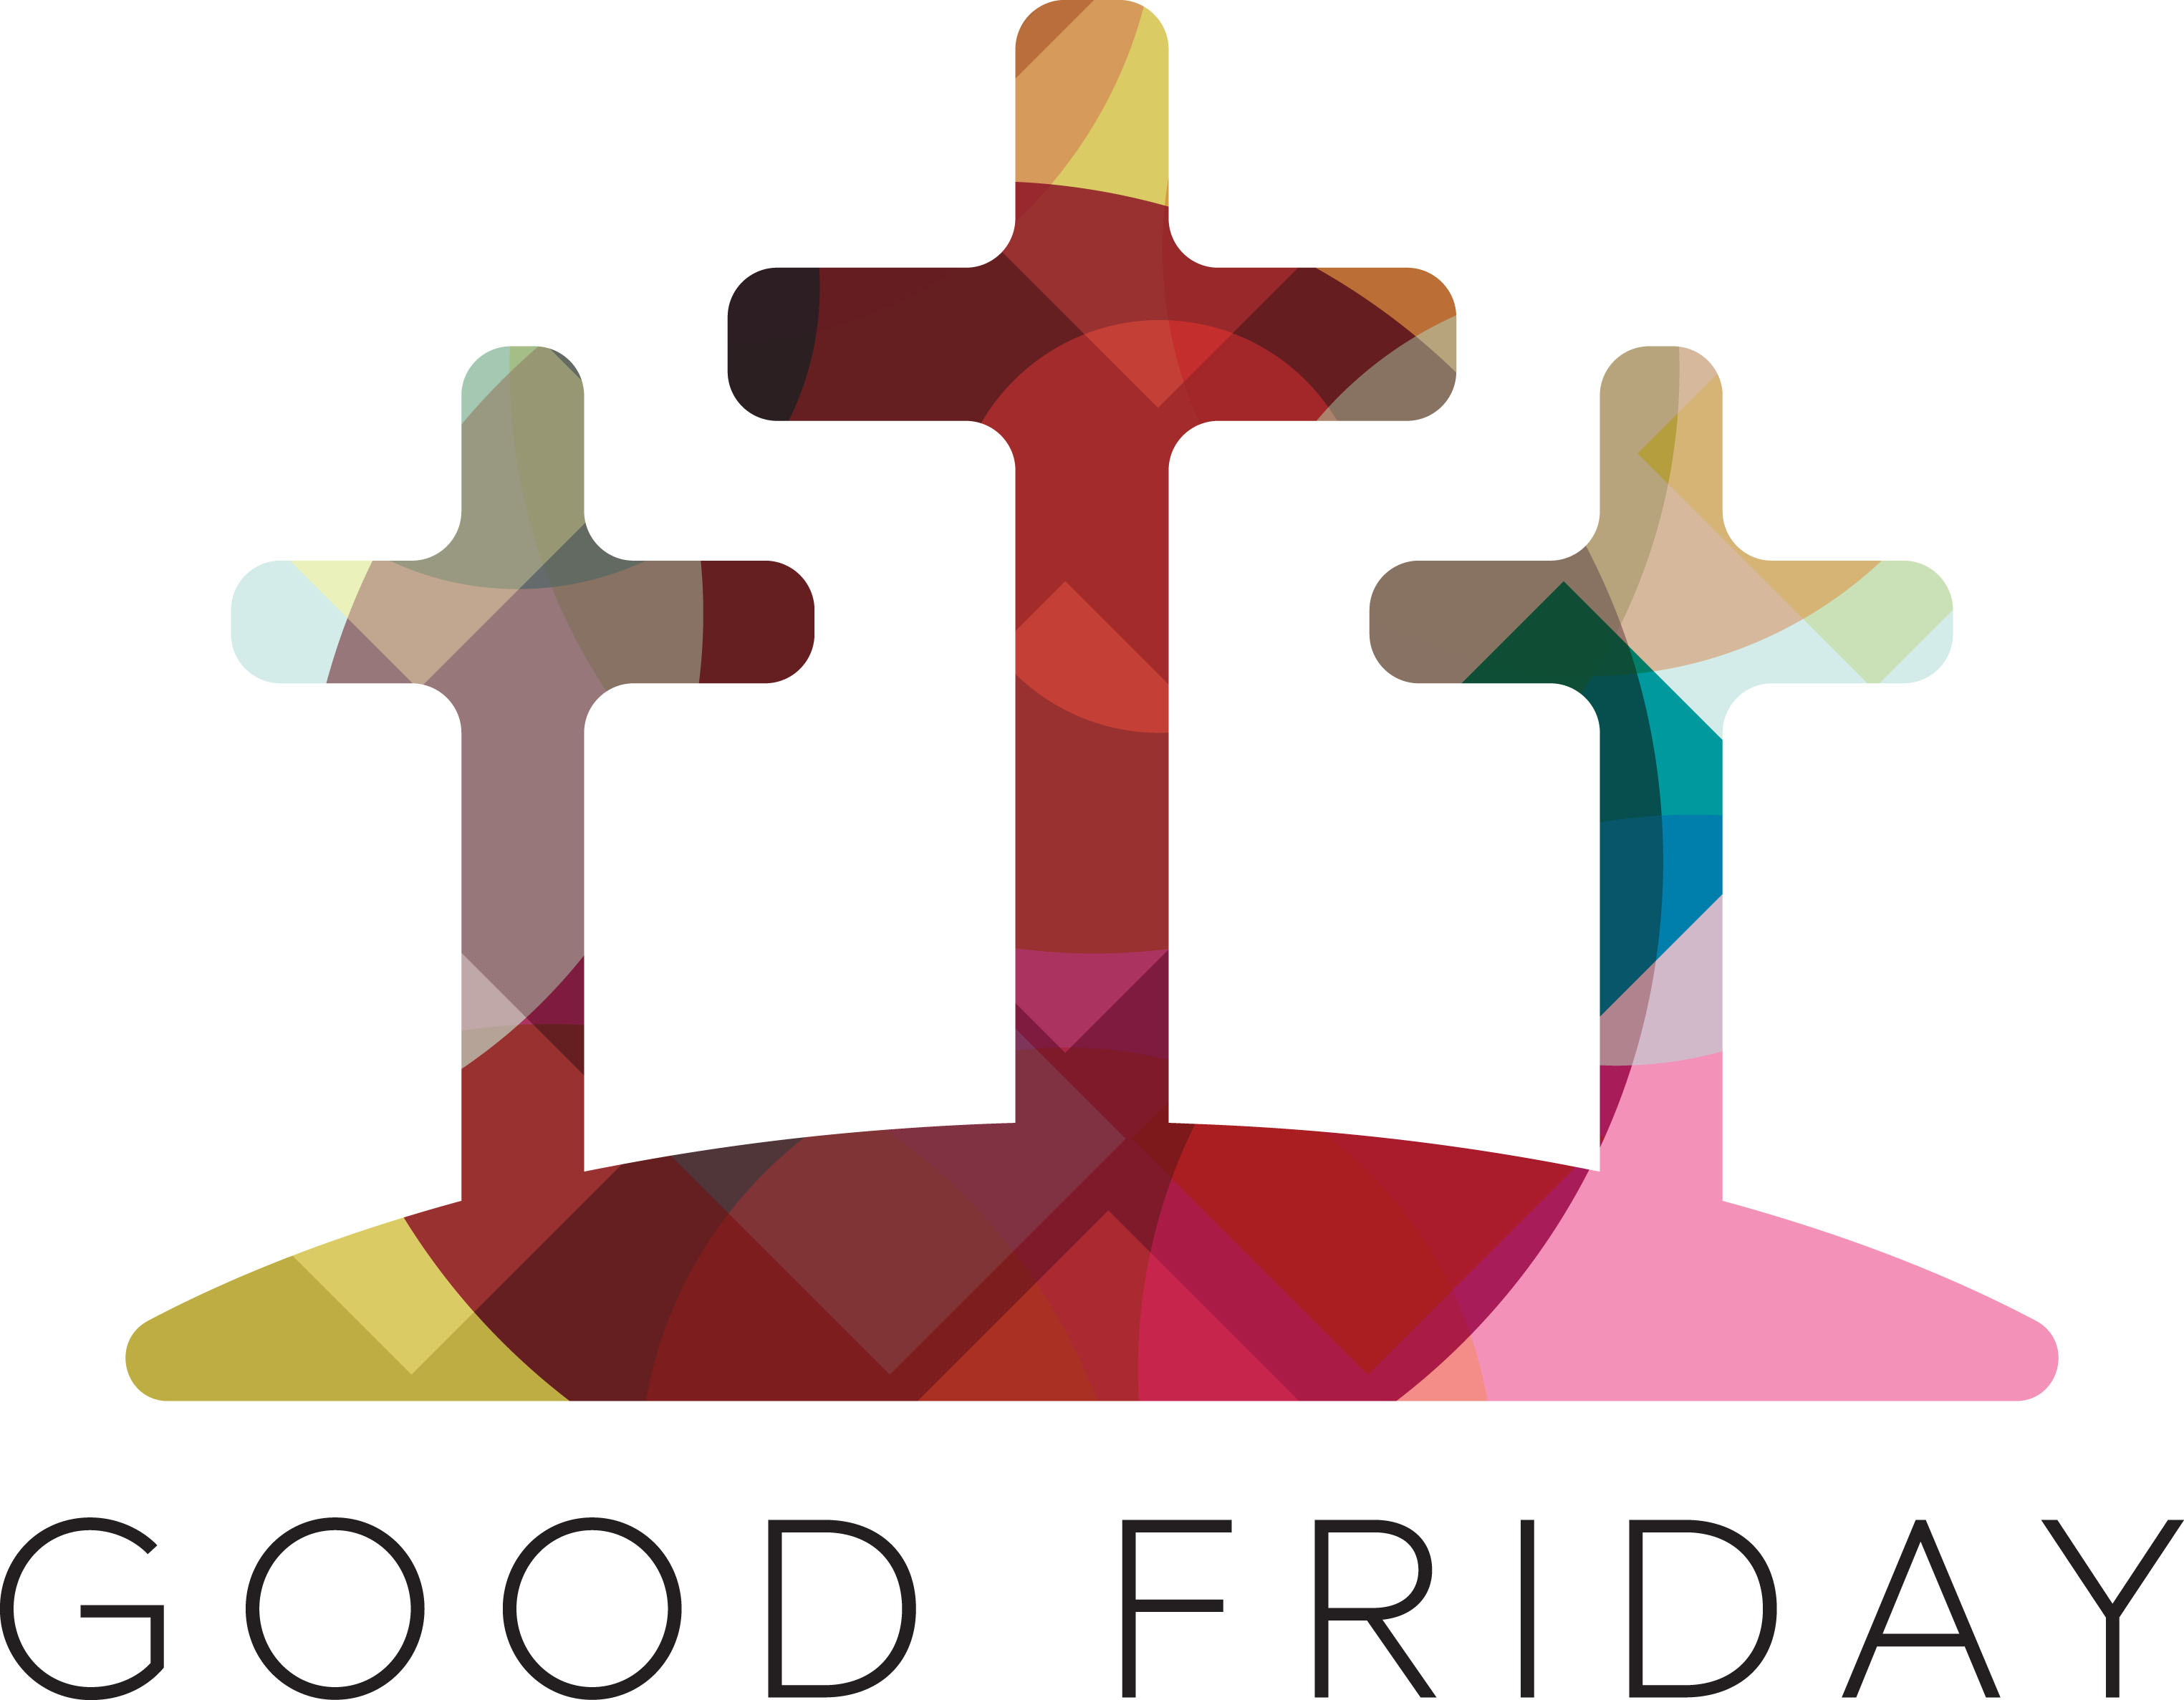 good friday cross graphic image crucifixion christ hd wallpaper